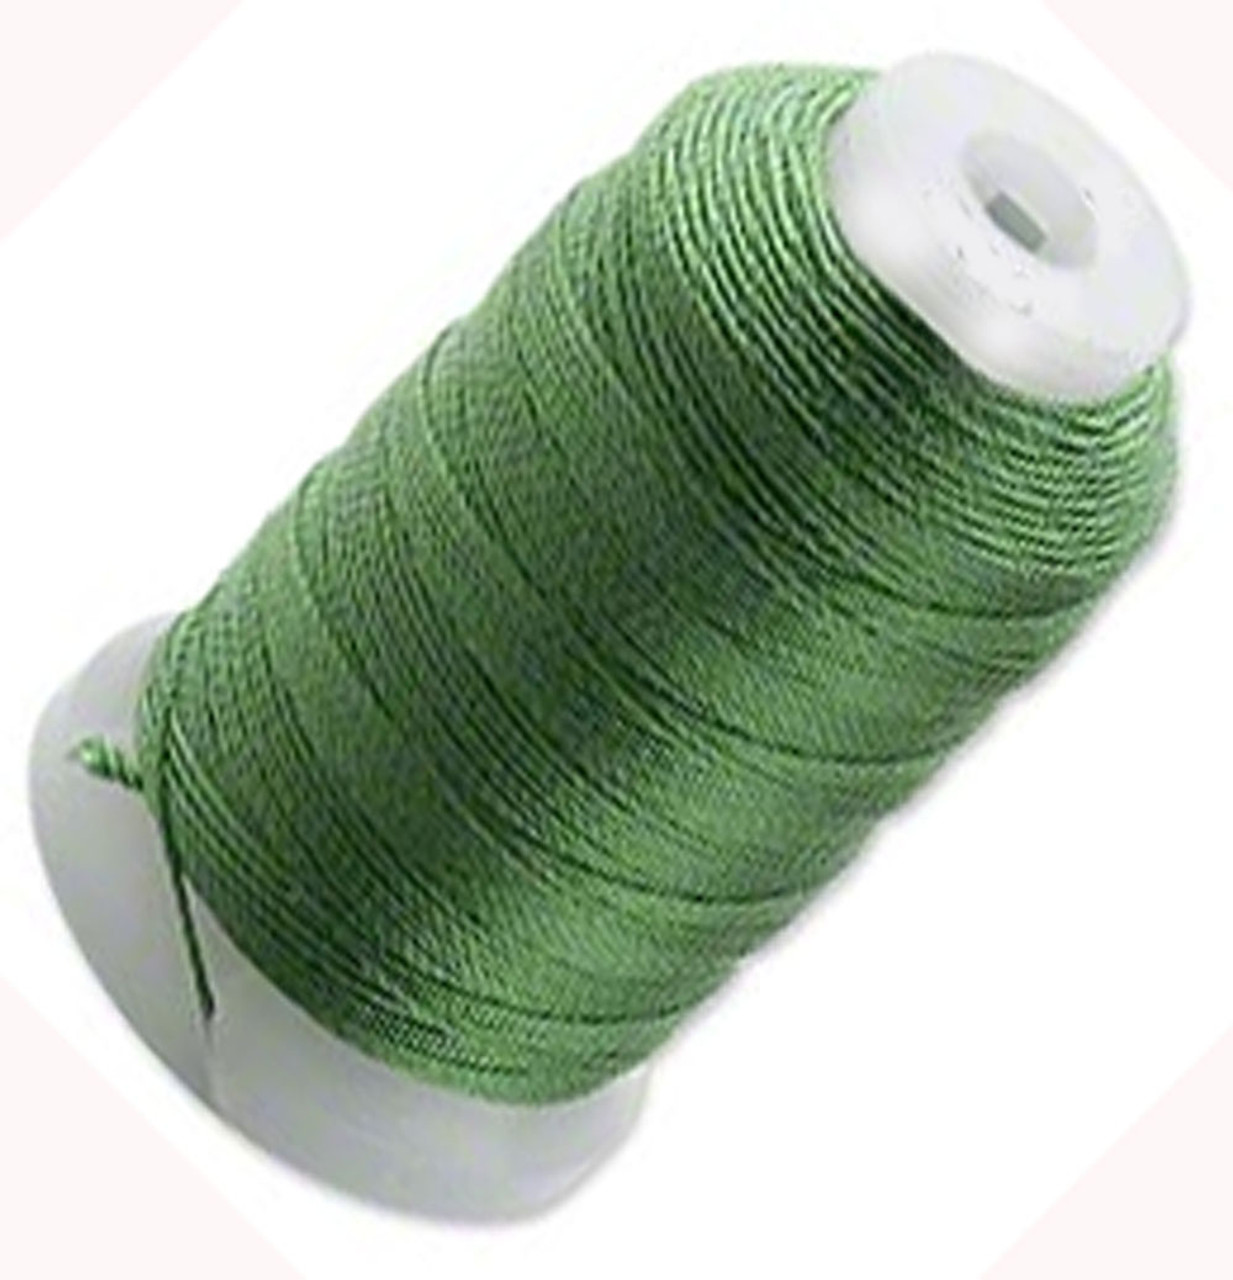 Simply Silk Beading Thick Thread Cord Size FFF Turquoise 0.016 Inch 0.42mm Spool 92 Yards Compatible with Kumihimo Super Lon